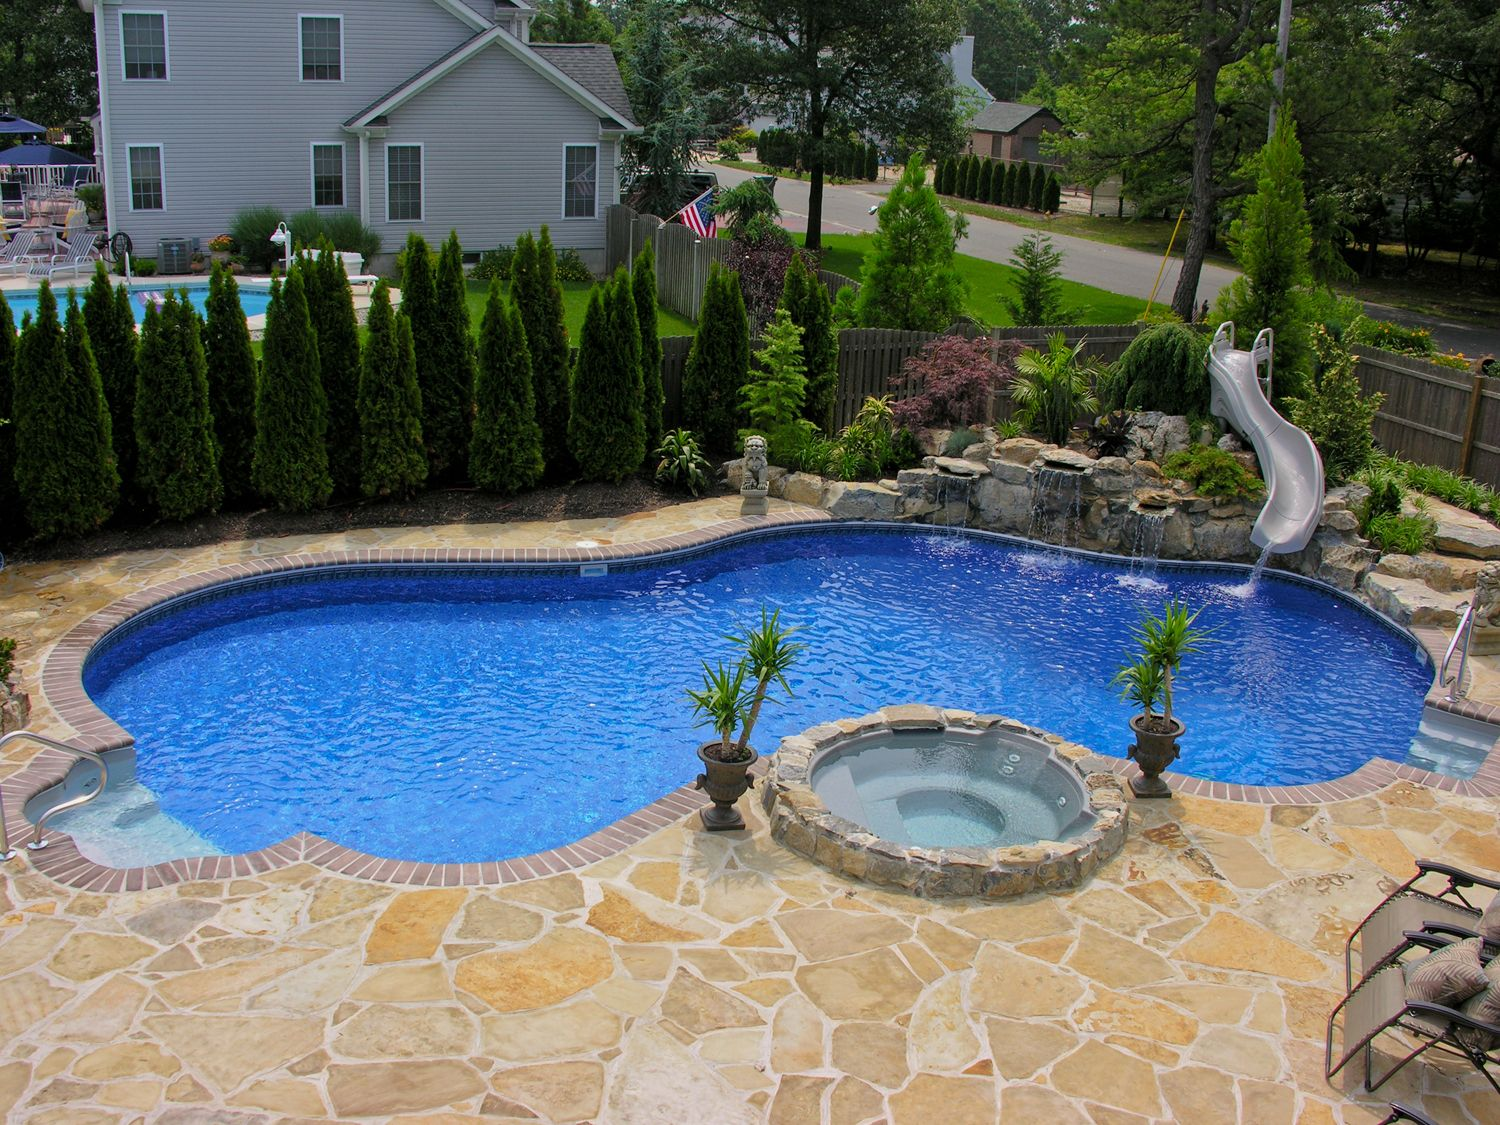 Pool town nj inground swimming pools with spa and slide for Gunite pool design ideas